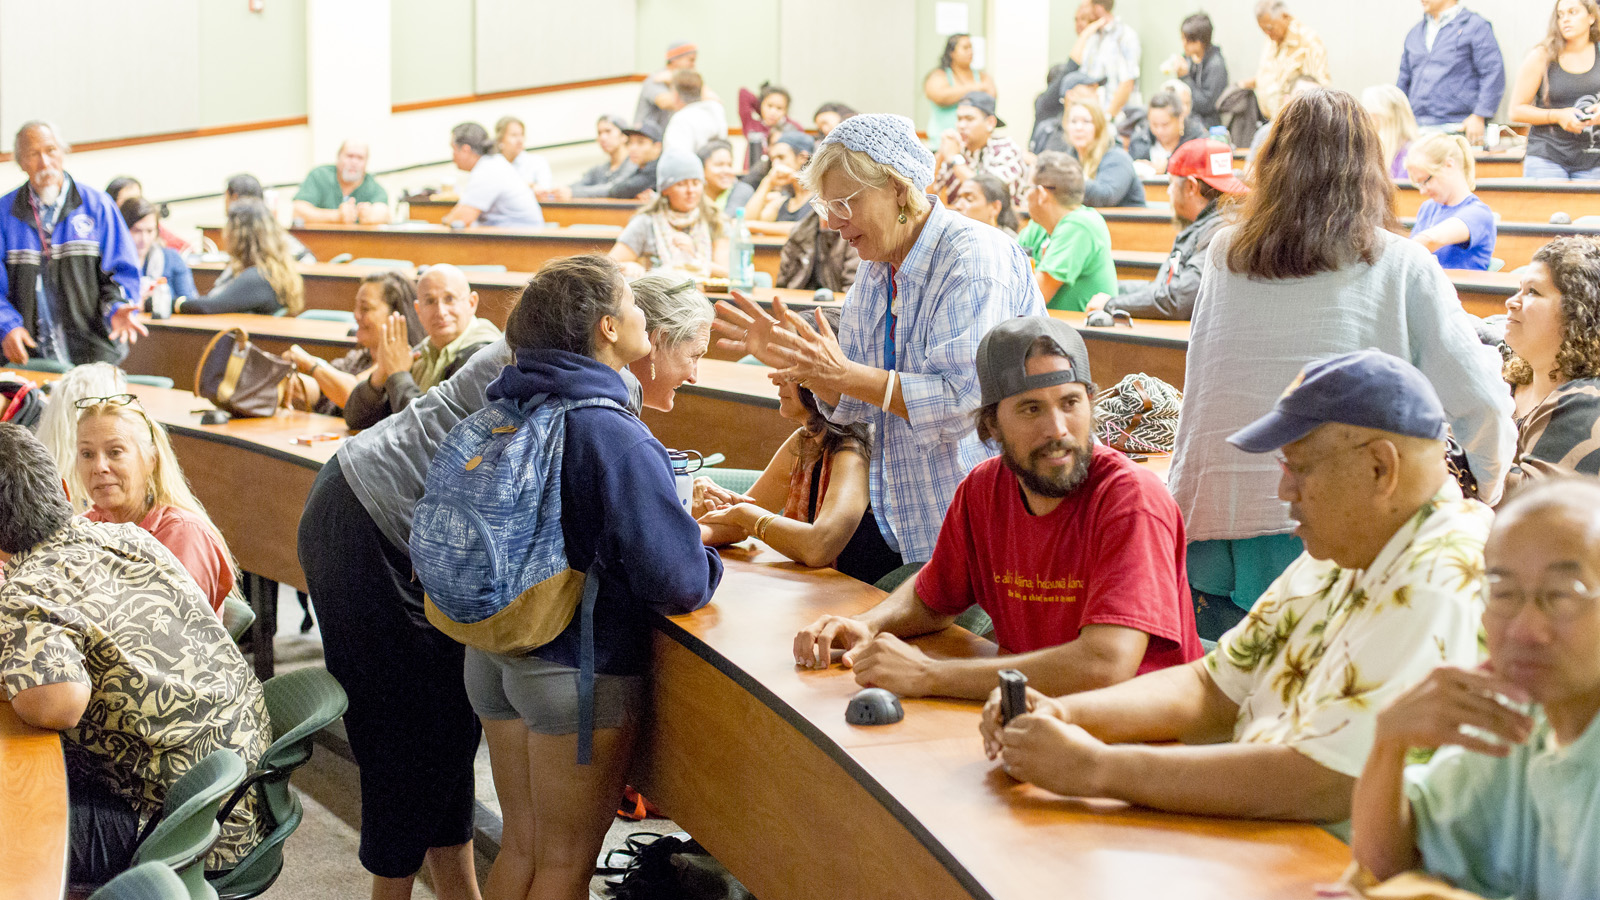 Participants engage in breakout discussions in tiered lecture hall.